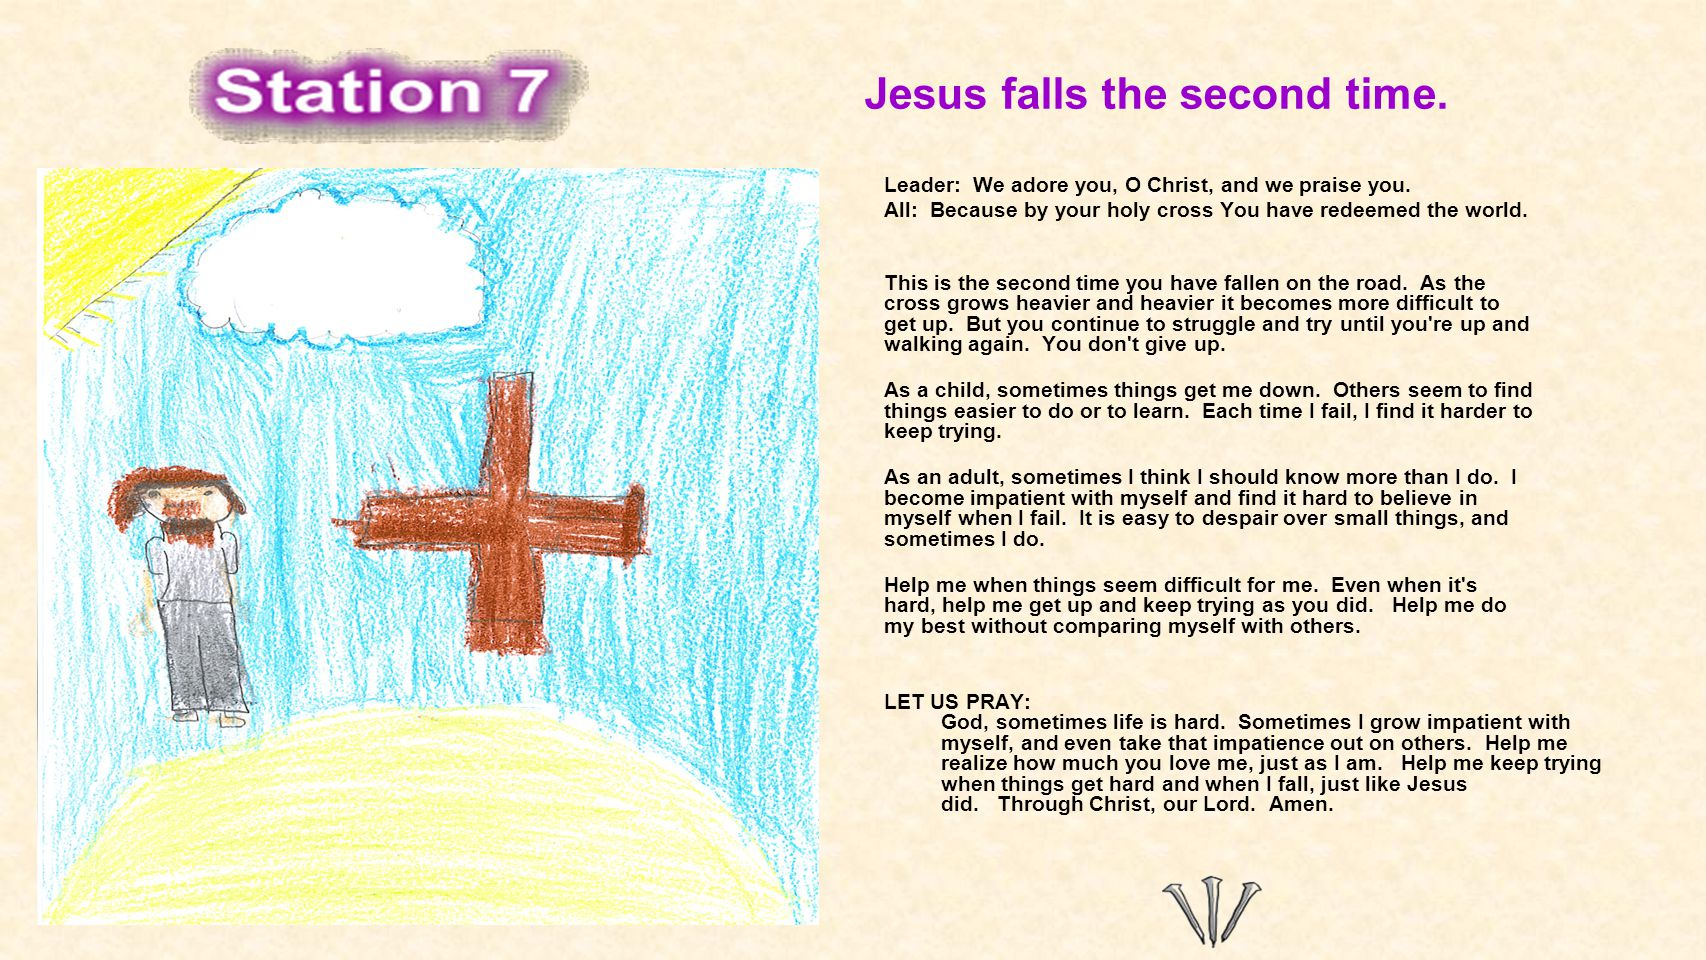 Jesus falls the second time. Leader: We adore you, O Christ, and we praise you. All: Because by your holy cross You have redeemed the world. This is t